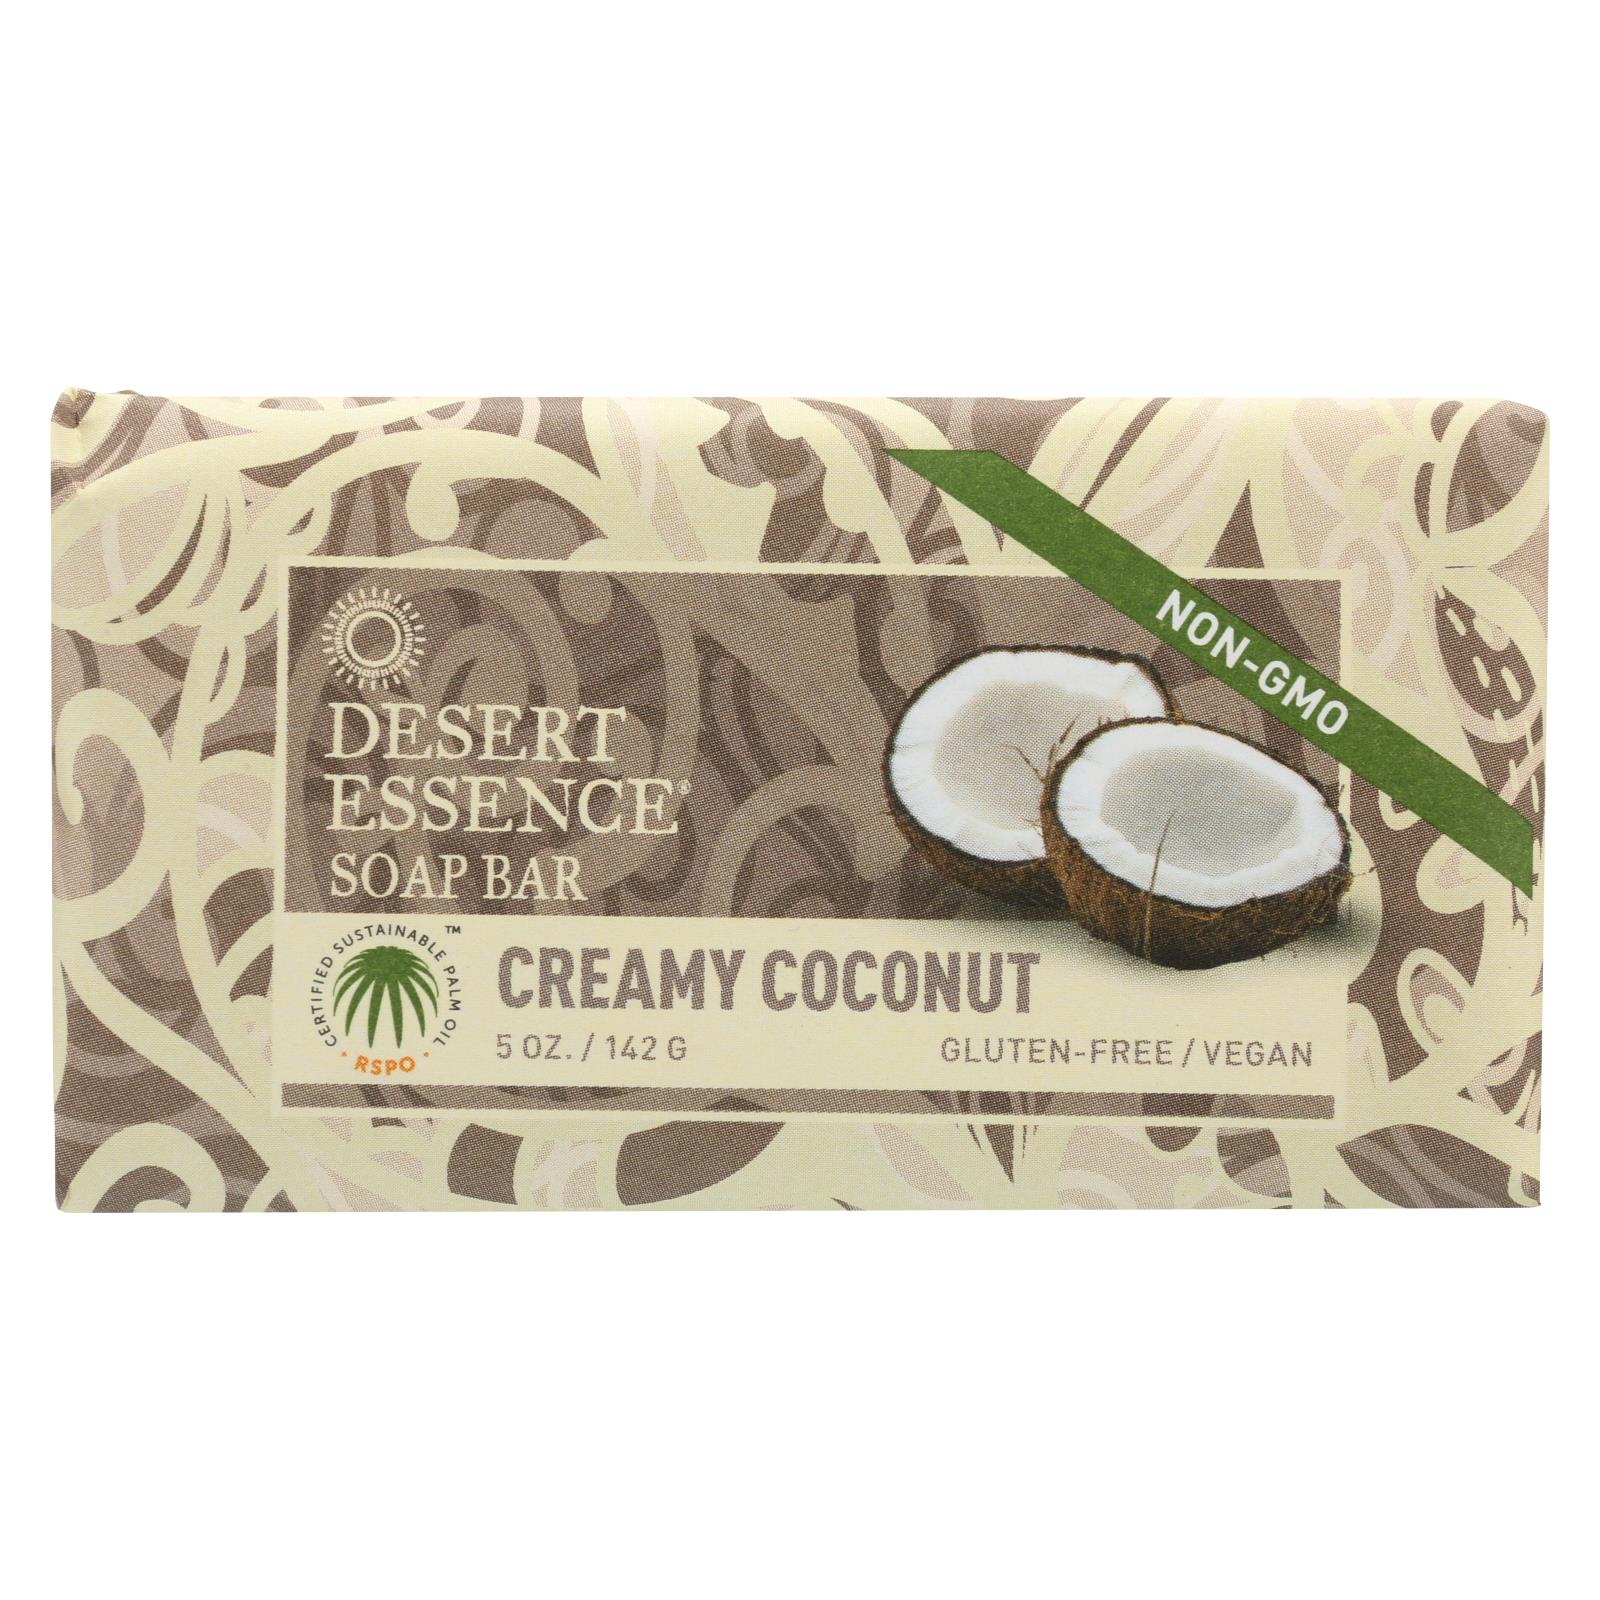 Buy Desert Essence Bar Soap - Creamy Coconut - 5 oz - Bar Soap from Veroeco.com